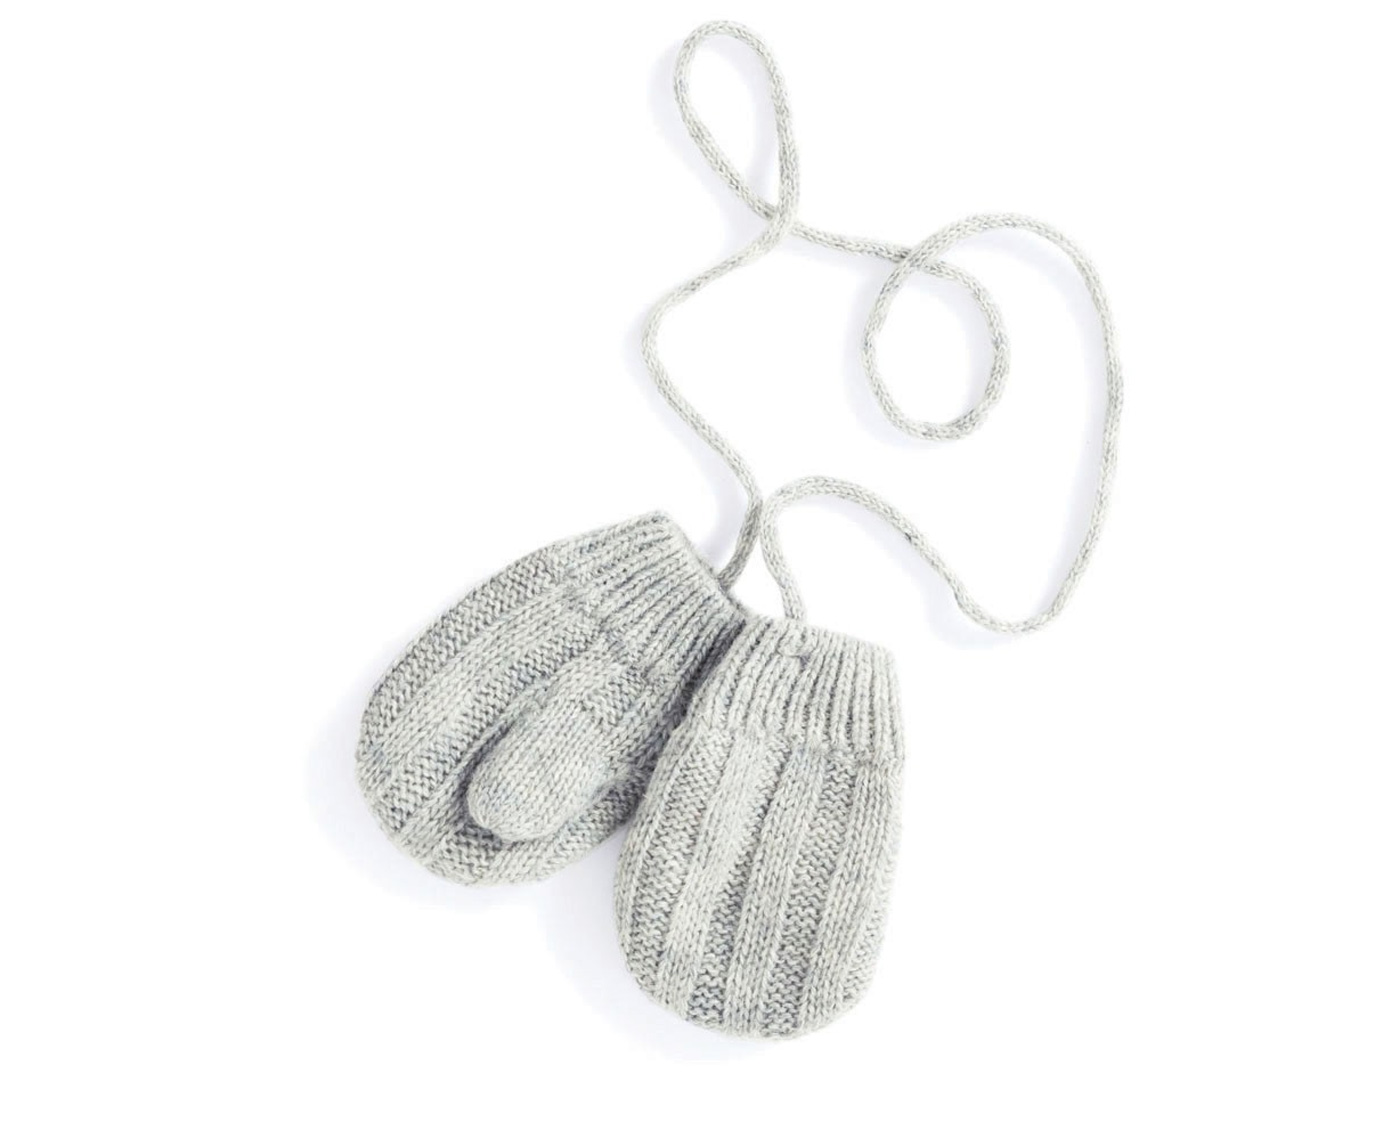 Wantjes 'Grey string'